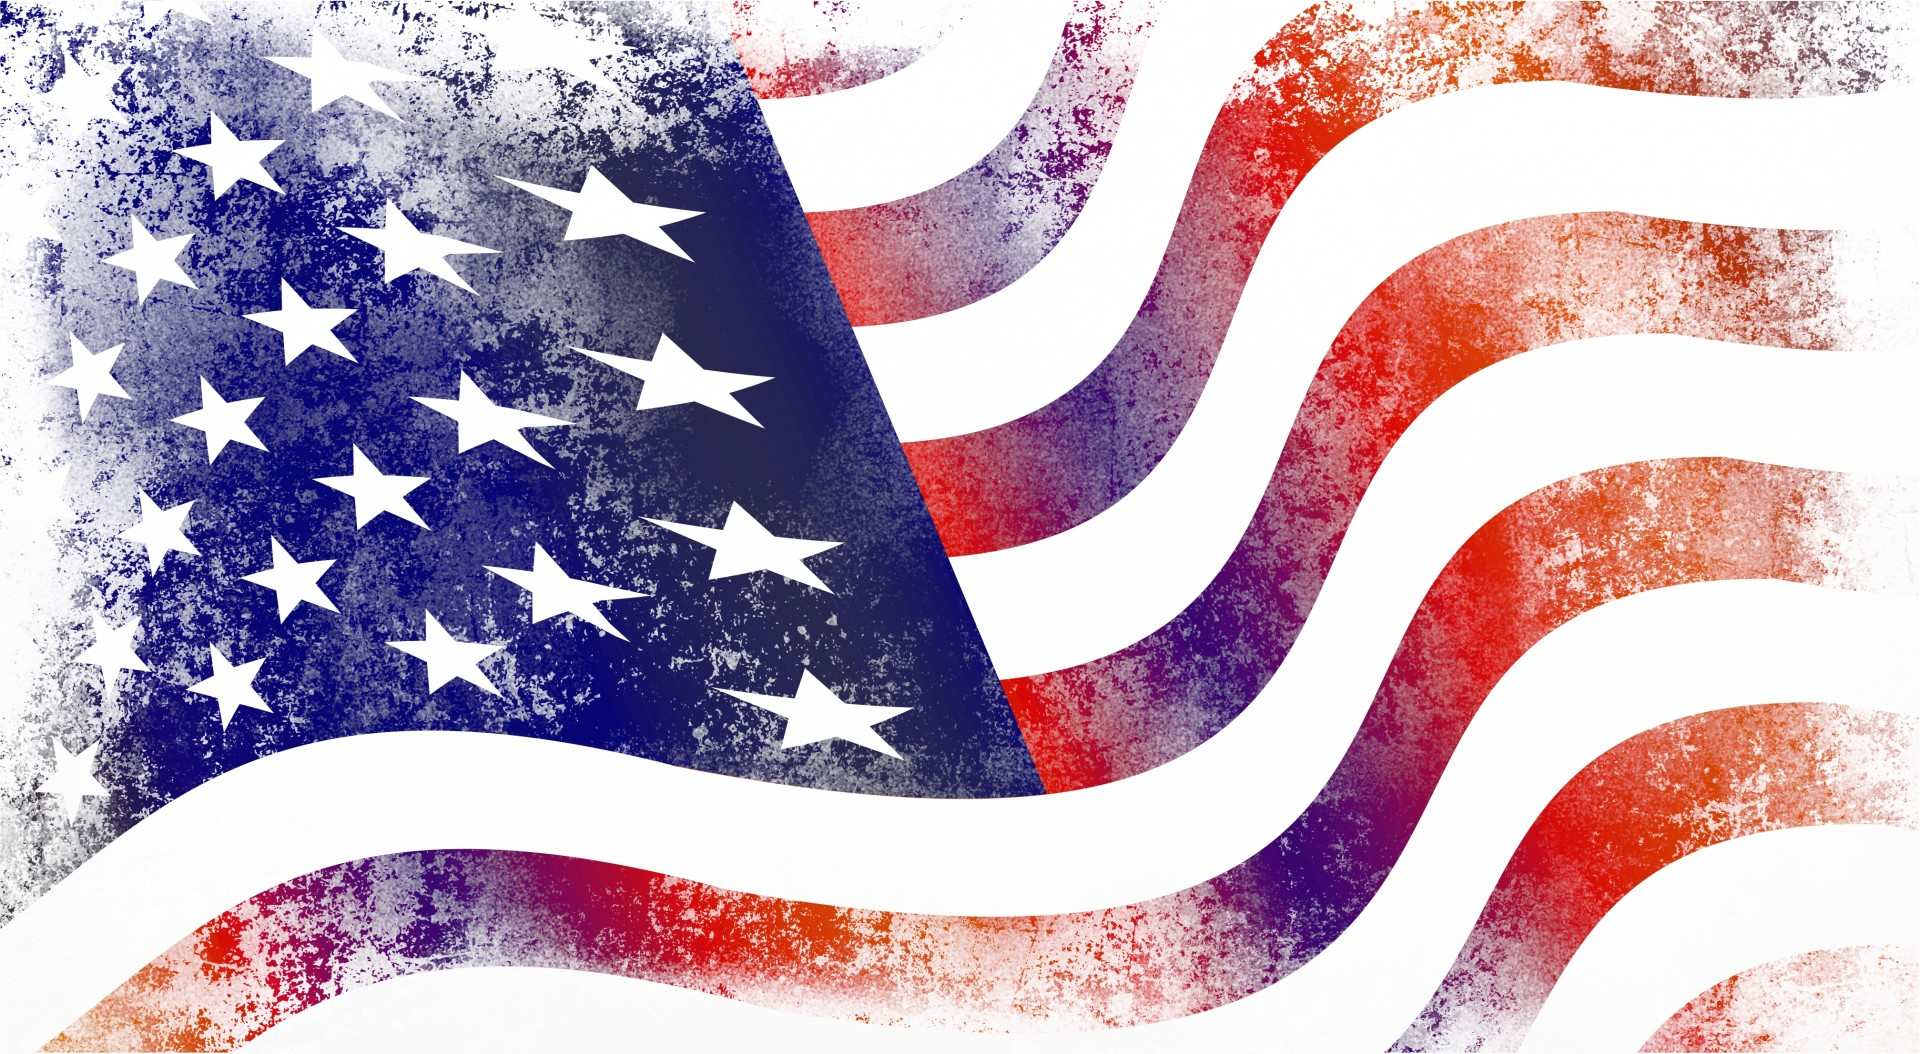 Grunge American Flag Free Stock Photo - Public Domain Pictures